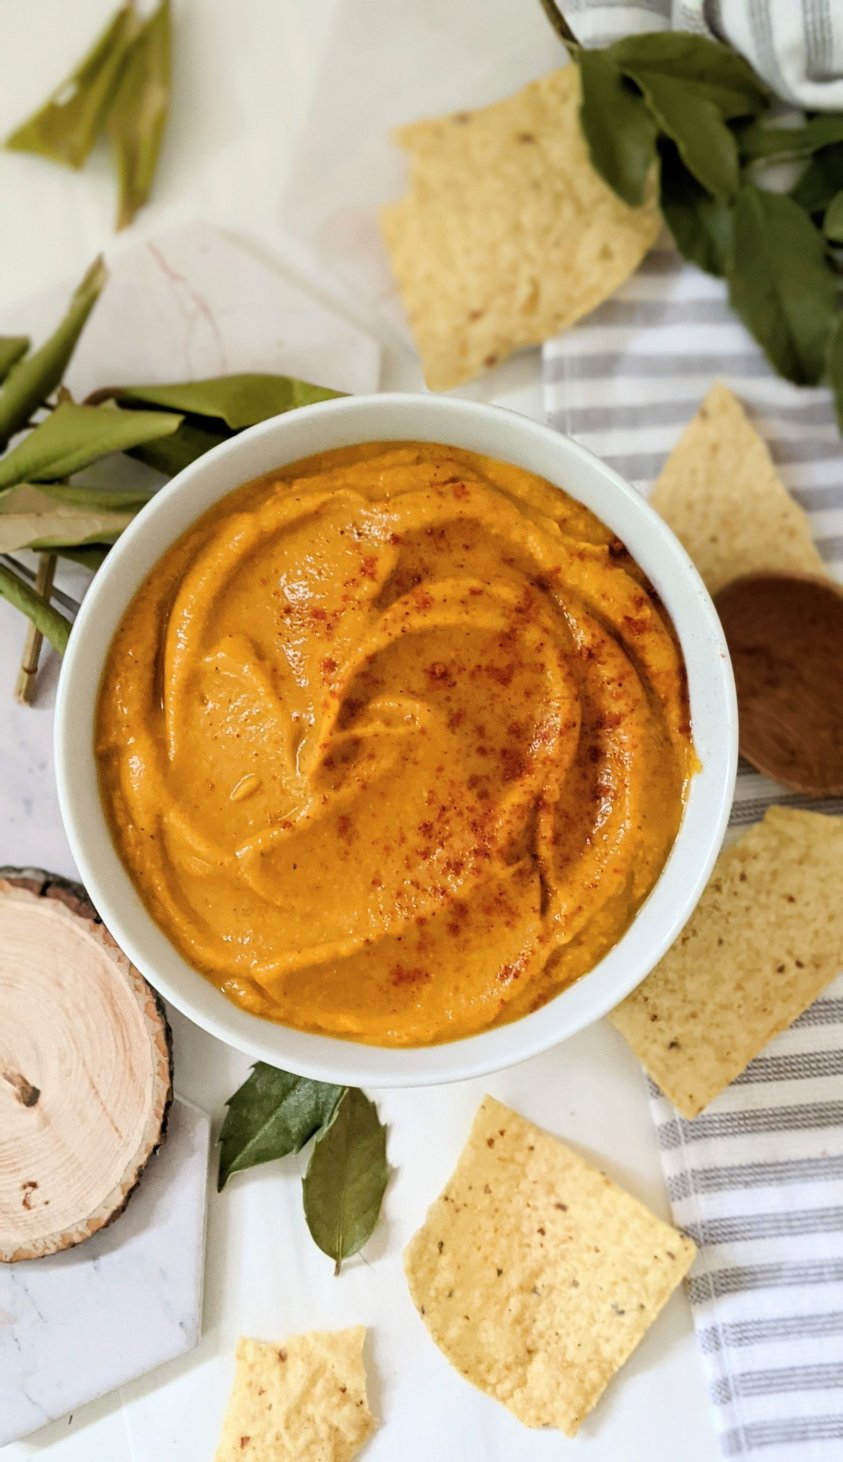 dairy free cheese sauce recipe for pasta nut free nacho cheese recipe vegan cheese sauce without cashews recipe plant based vegetable cheese sauce recipes